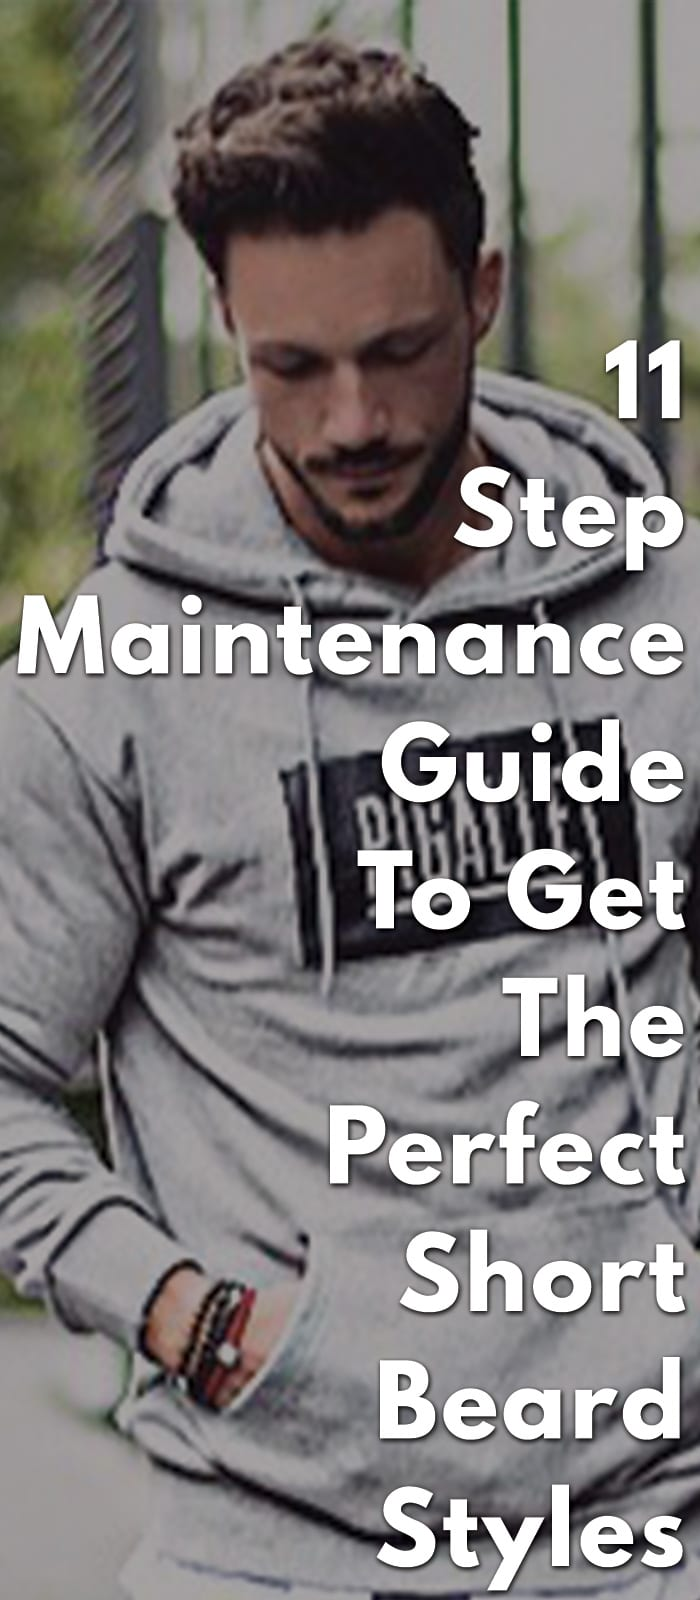 11-Step-Maintenance-Guide-To-Get-The-Perfect-Short-Beard-Styles.